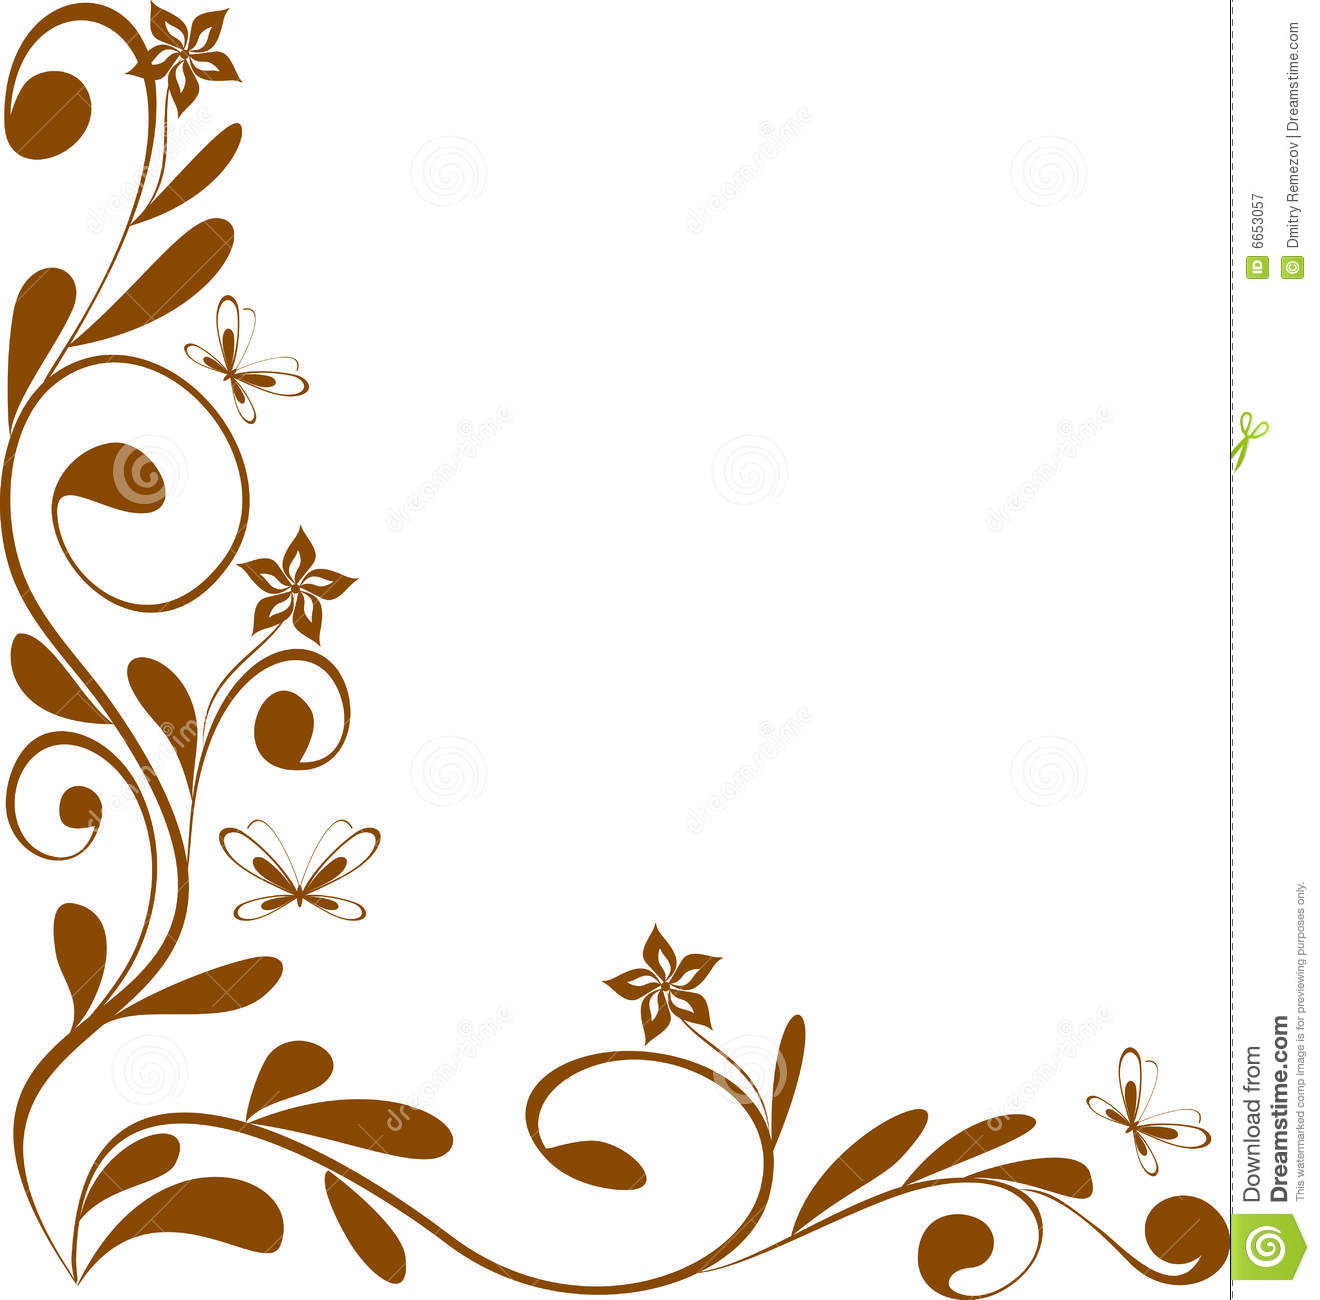 Floral design corner stock vector. Image of decoration ...